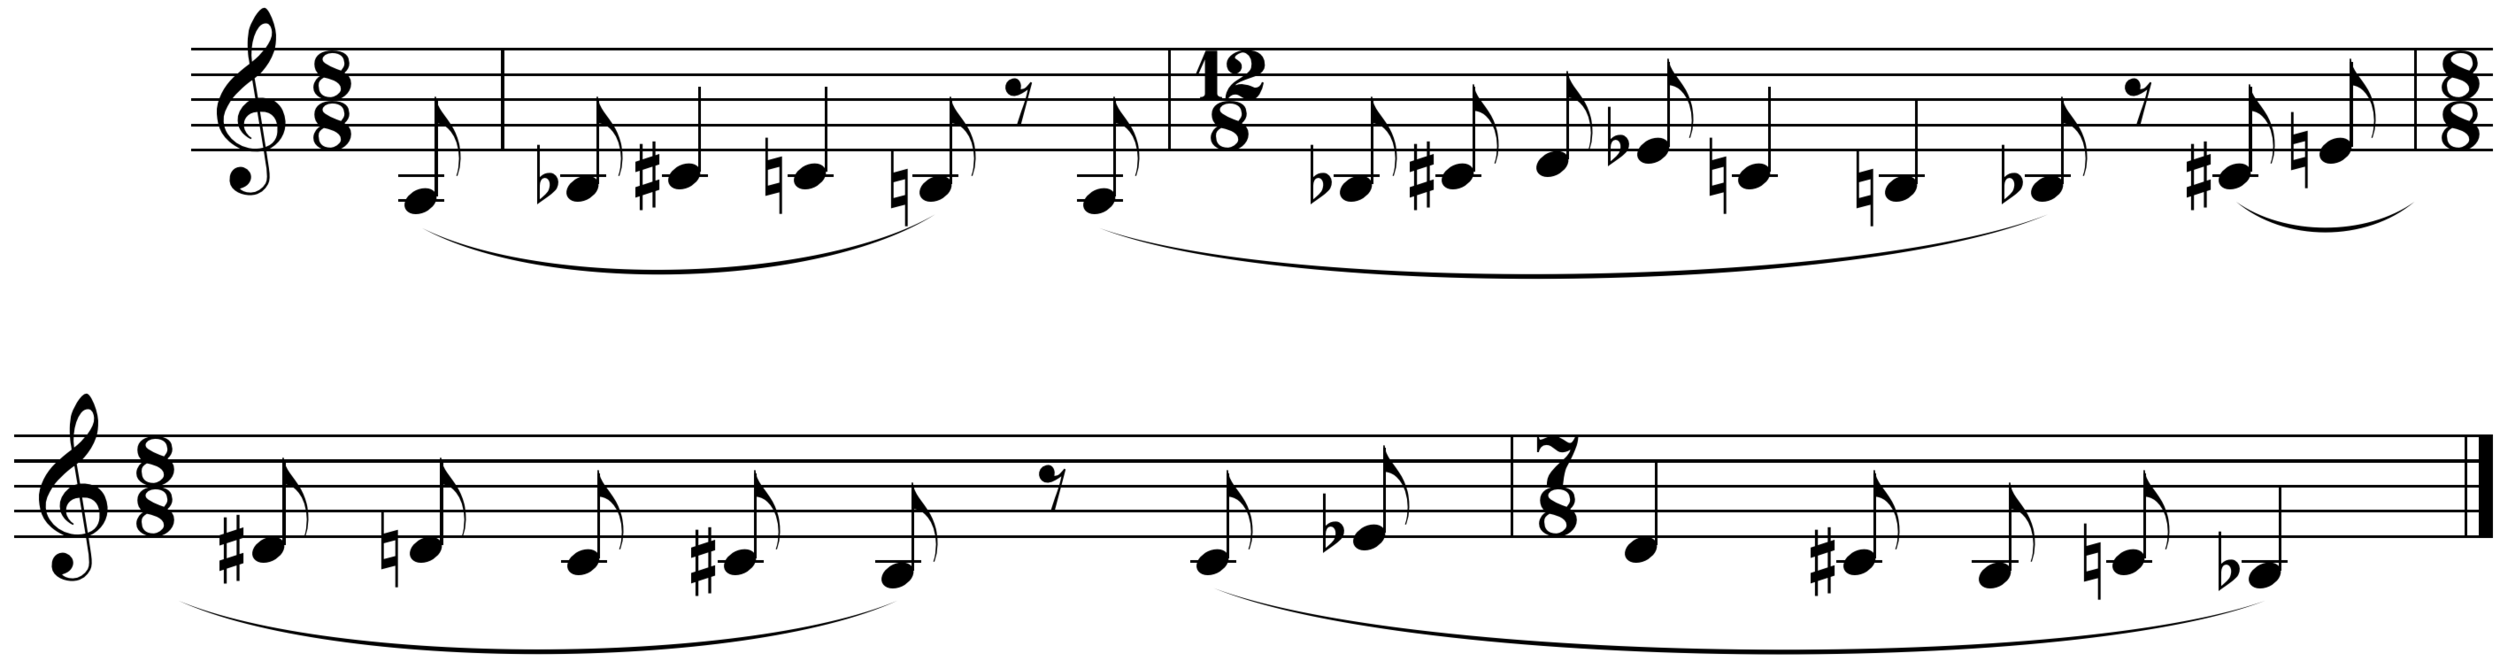 Figure 1. Fugue subject: mm. 1-4